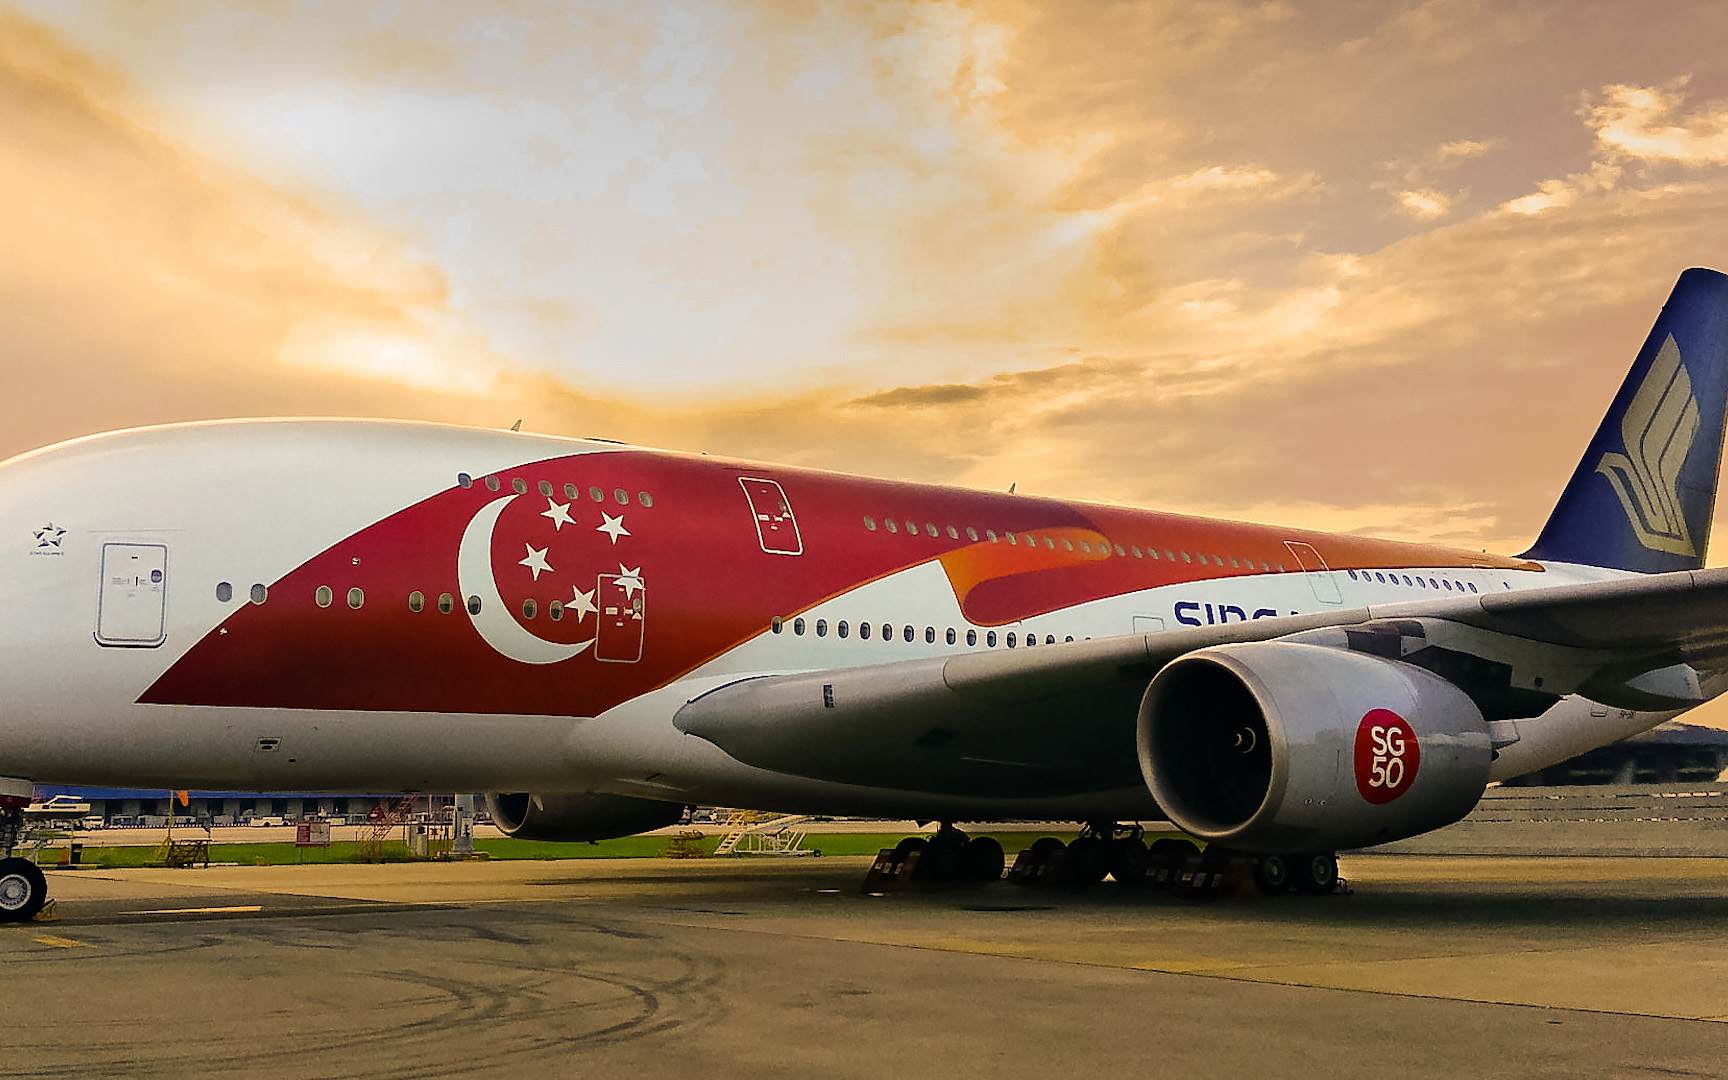 Singapore Airlines' SG50 A380, photo courtesy of Travel+Leisure